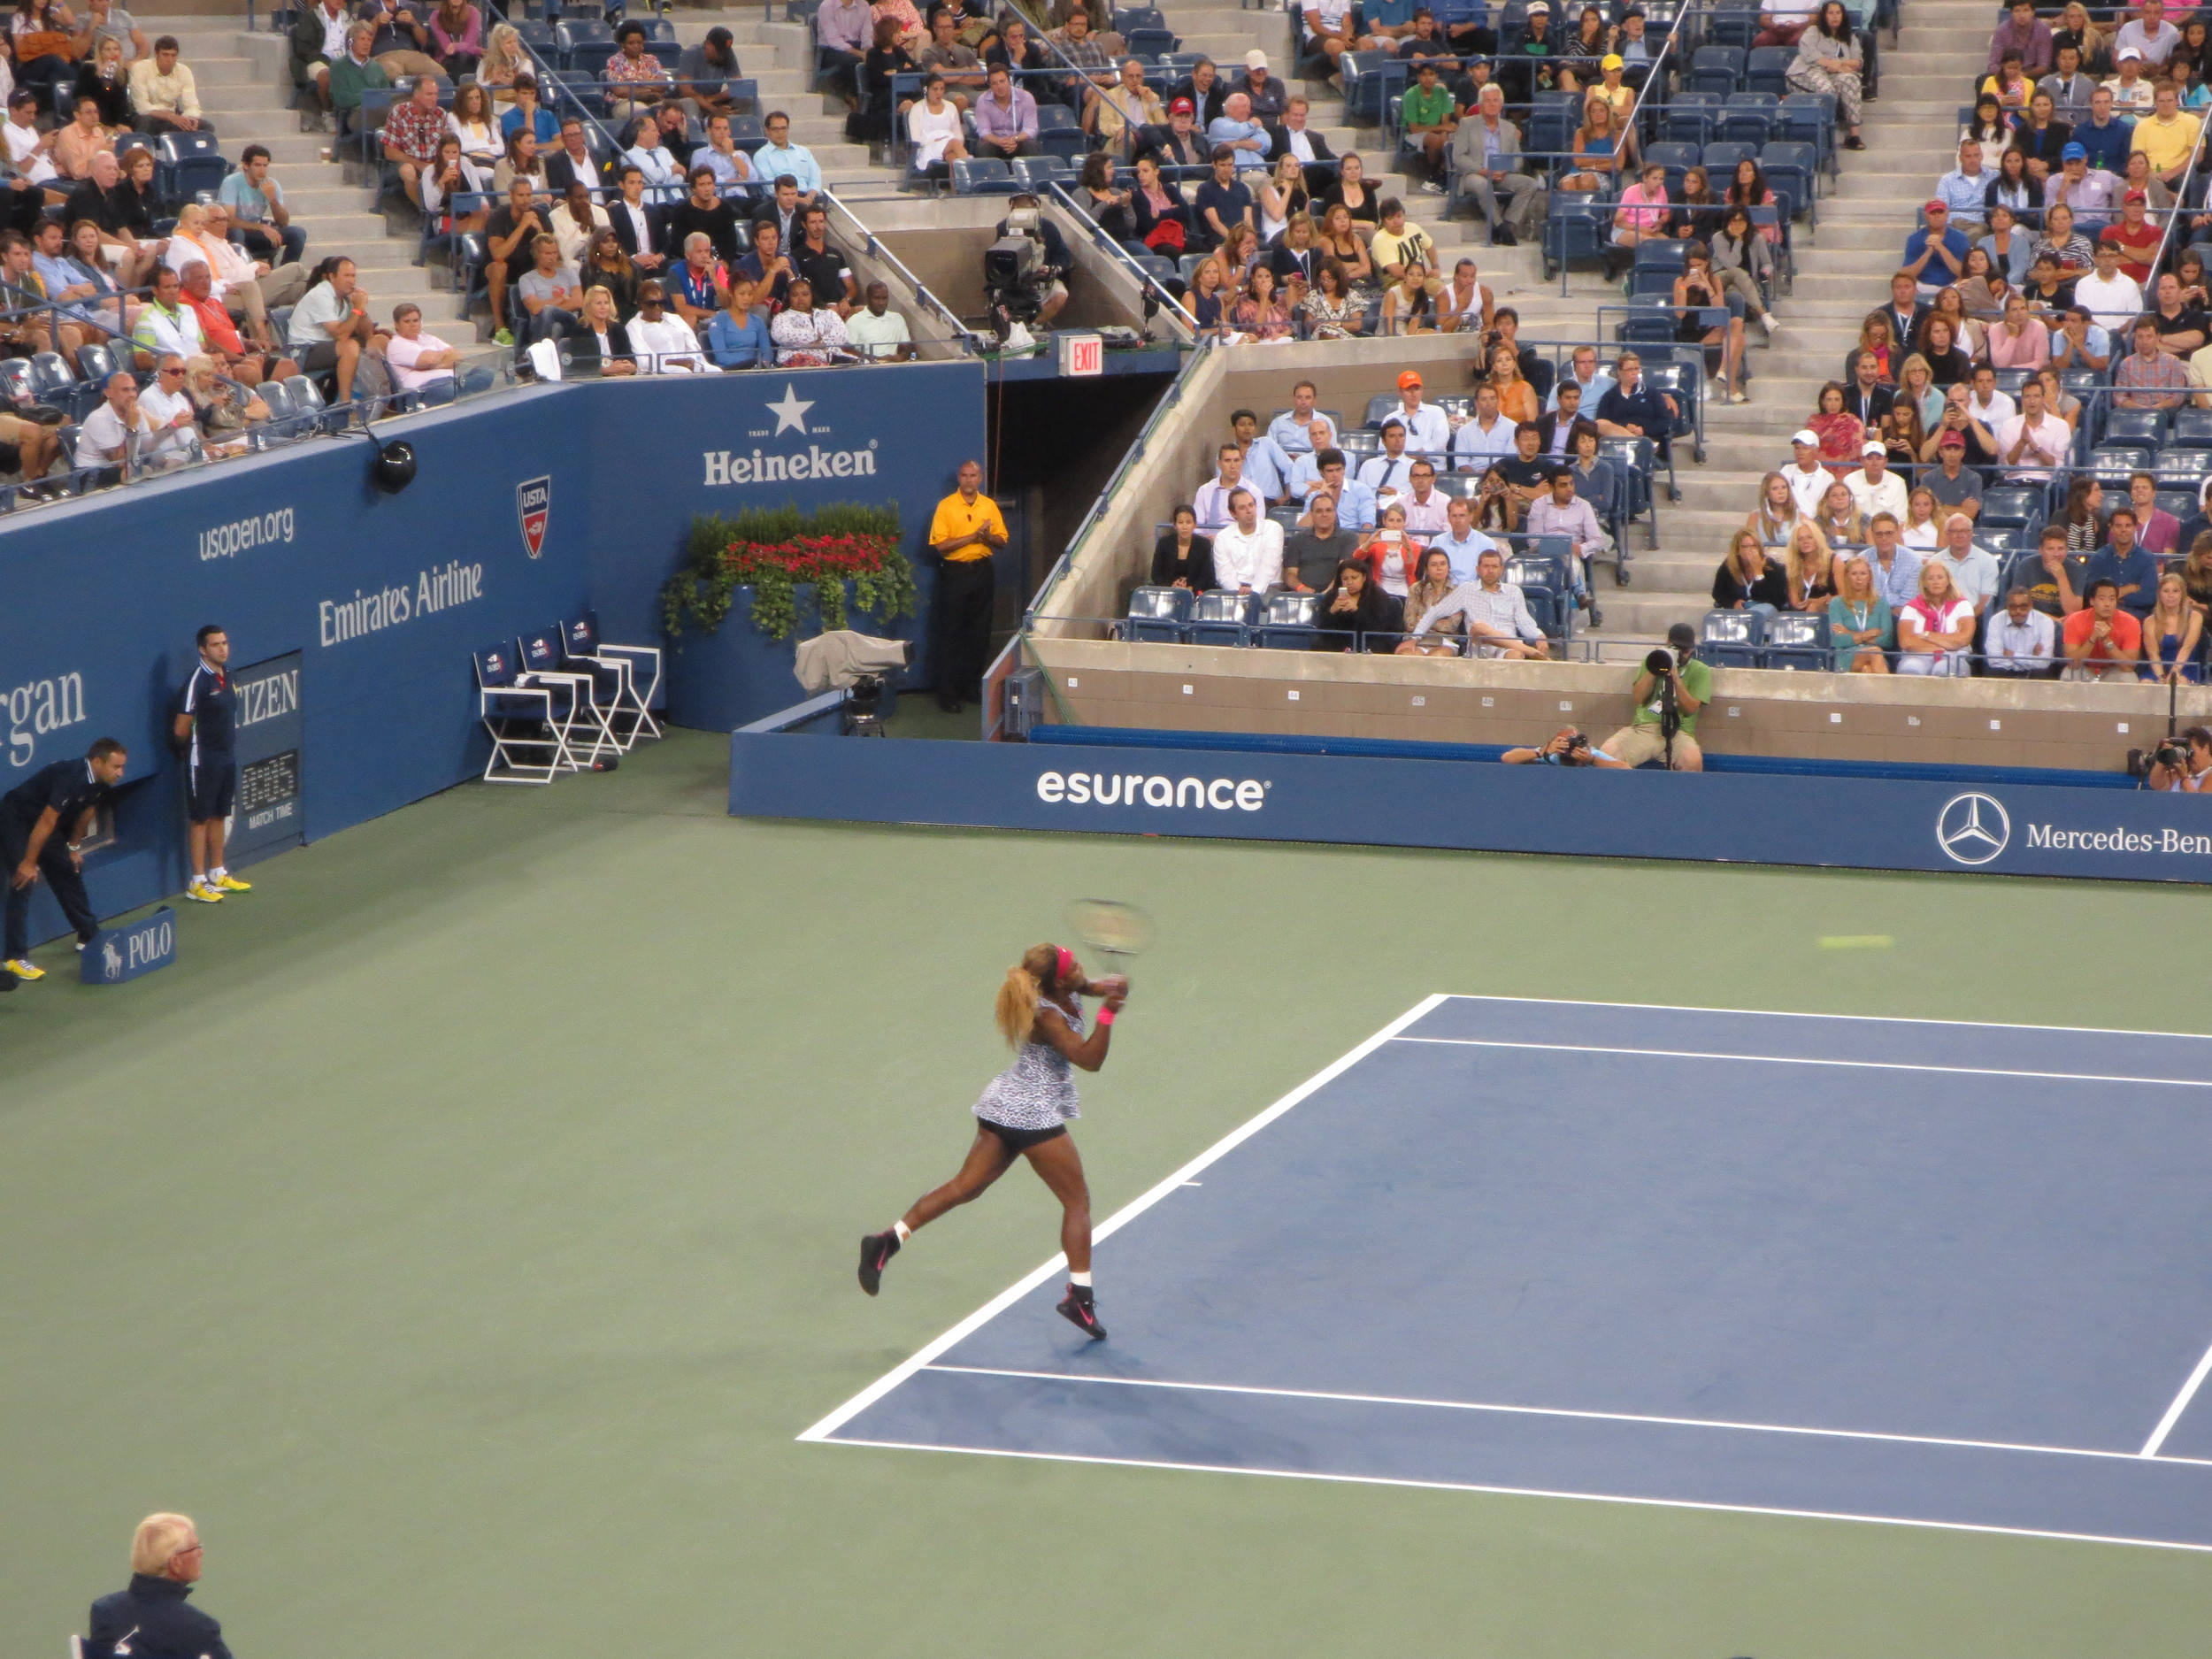 I would not want to be on the receiving end of one of Serena's hits.